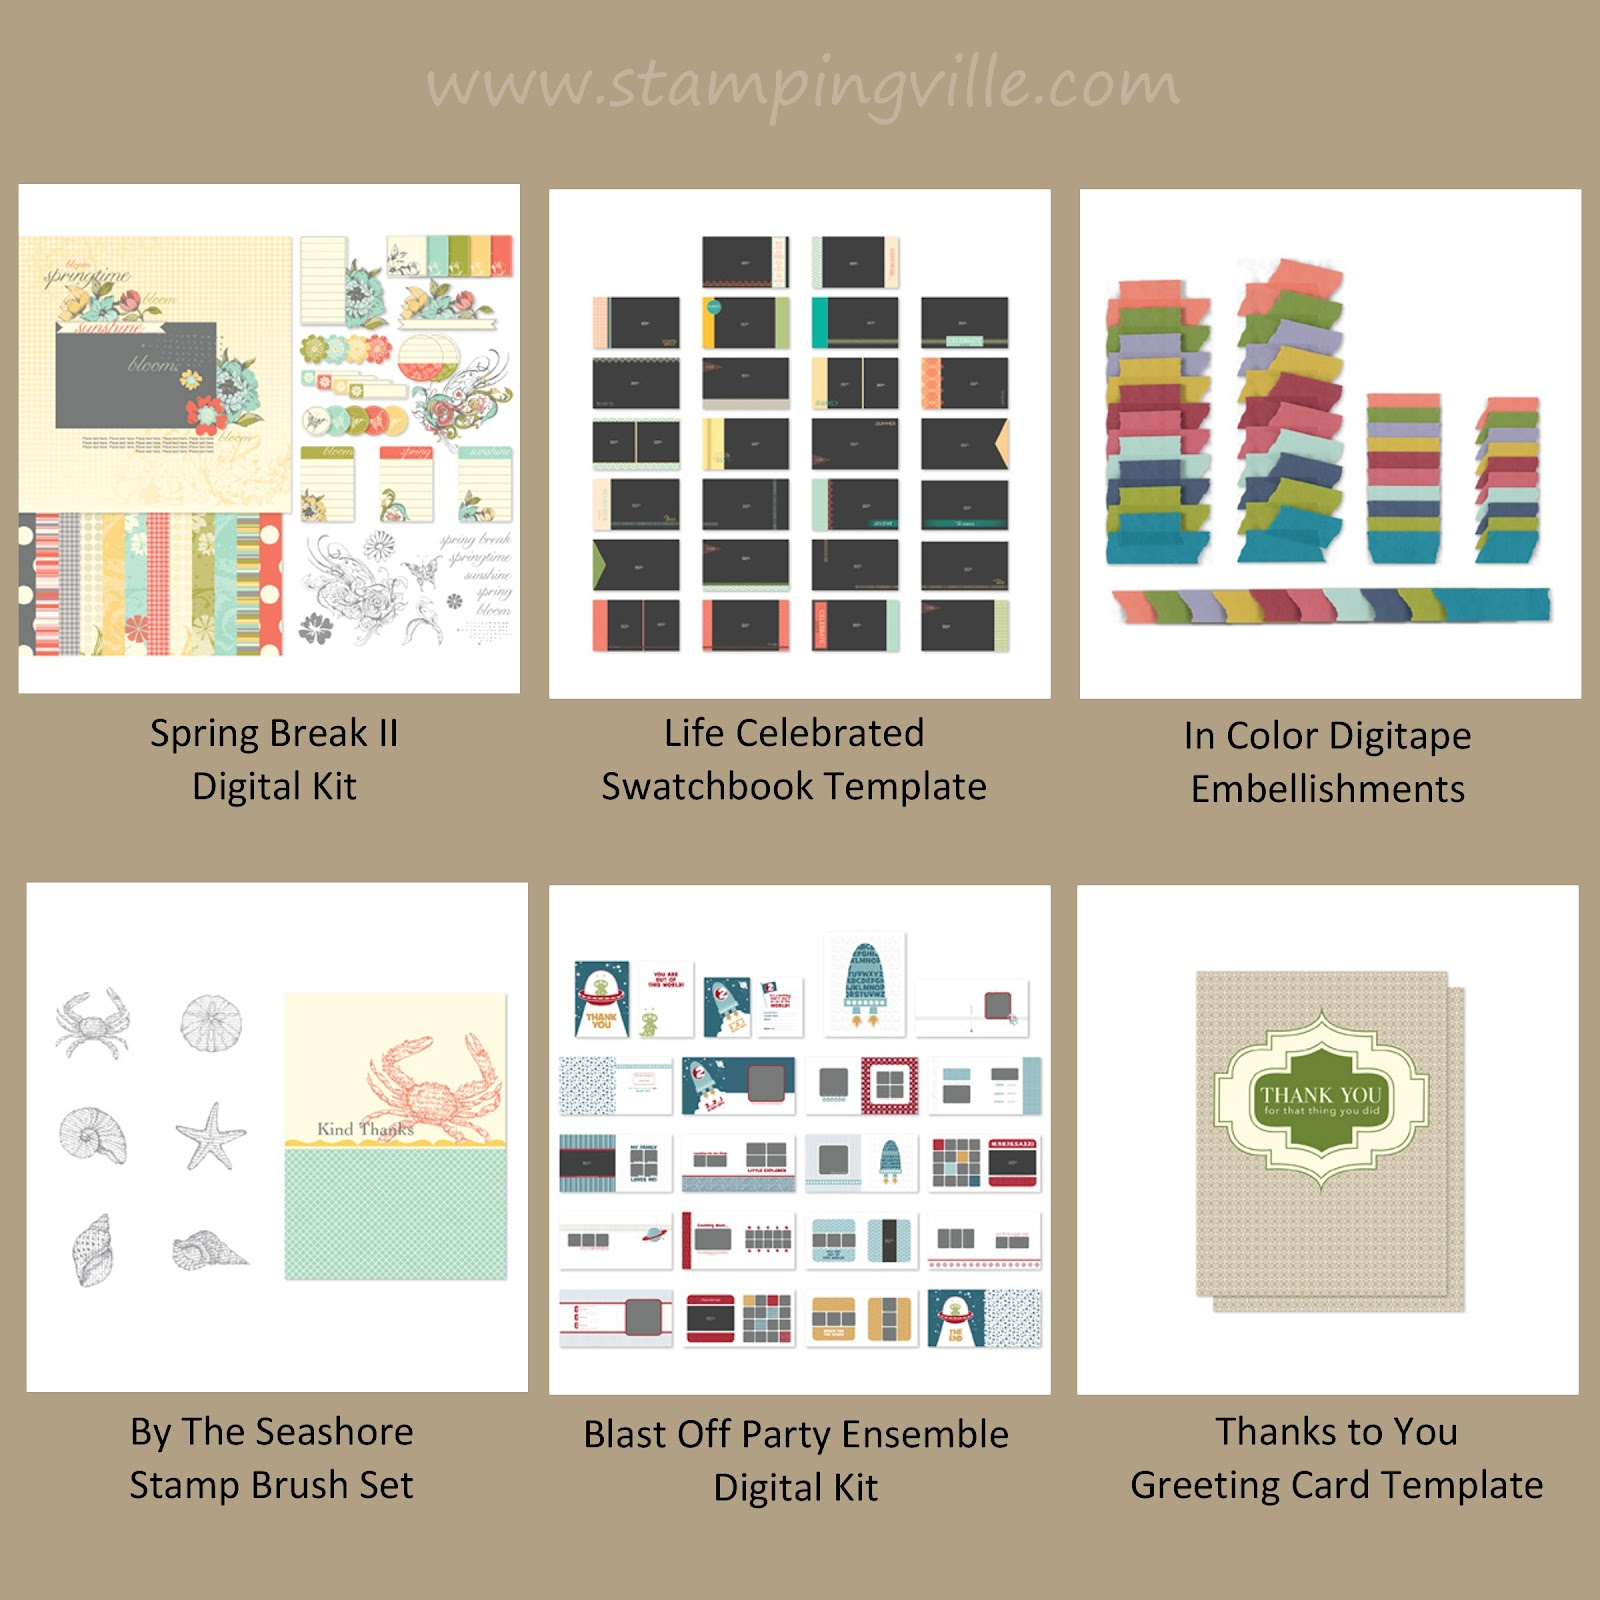 Digital Downloads from Stampin' Up! released June 19, 2012